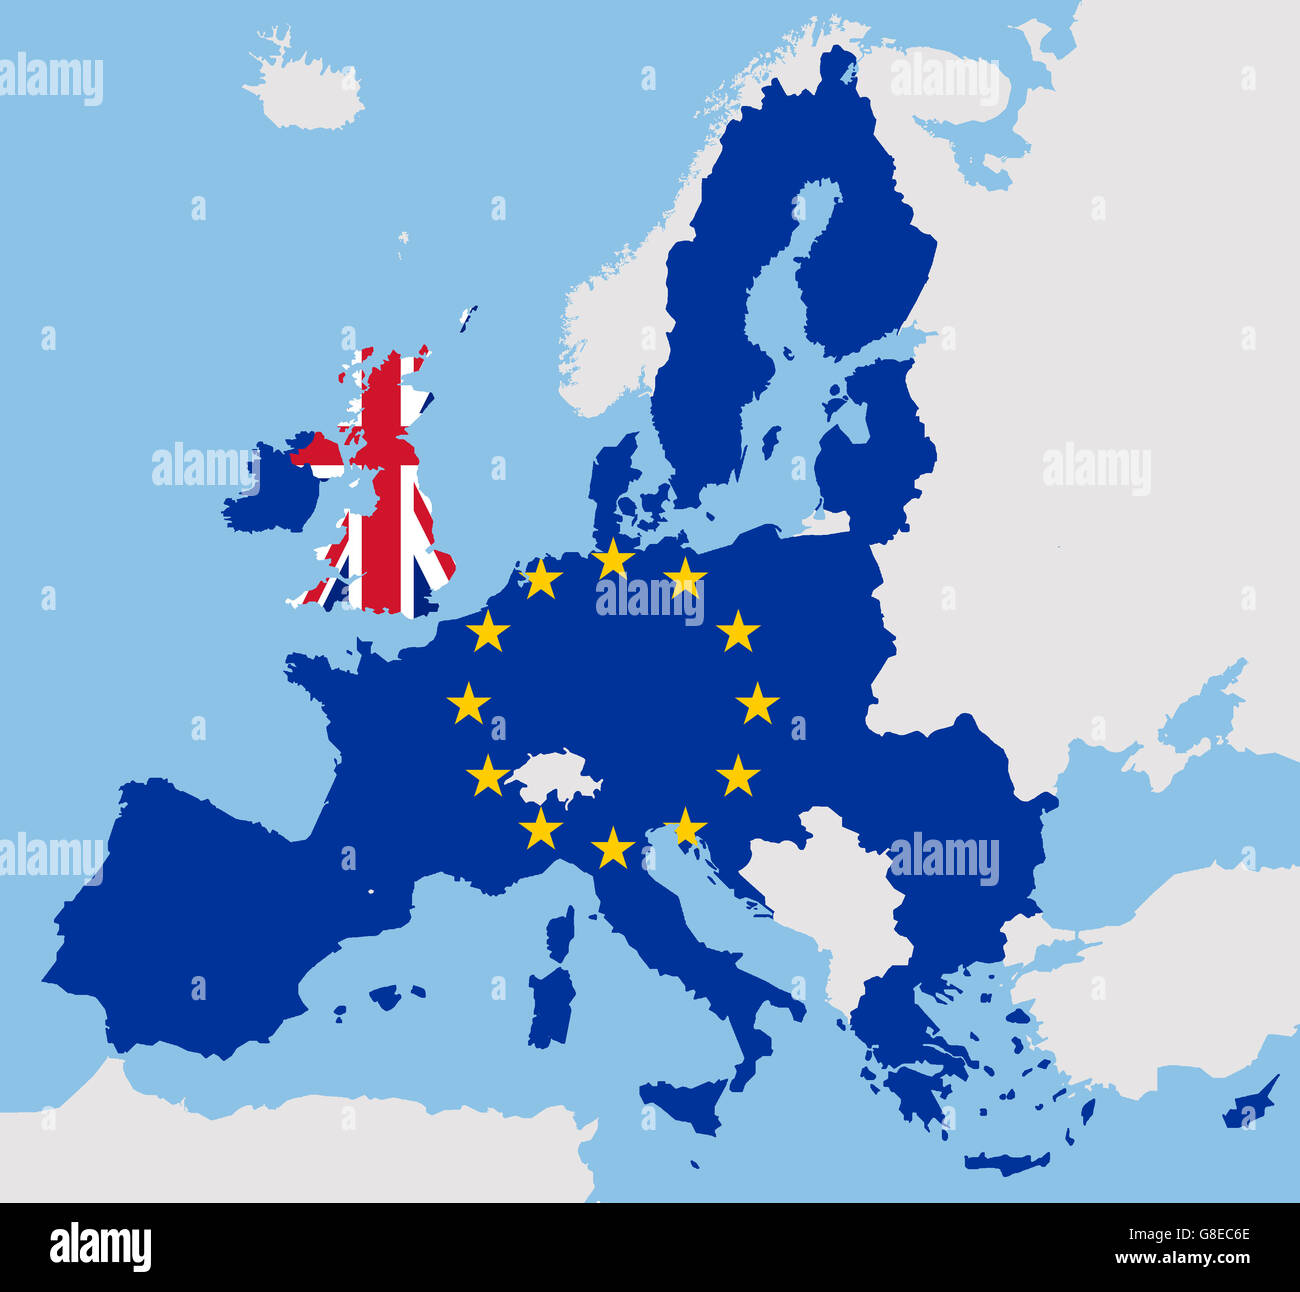 Brexit uk and eu map flags europe stock photo 108496374 alamy brexit uk and eu map flags europe gumiabroncs Choice Image